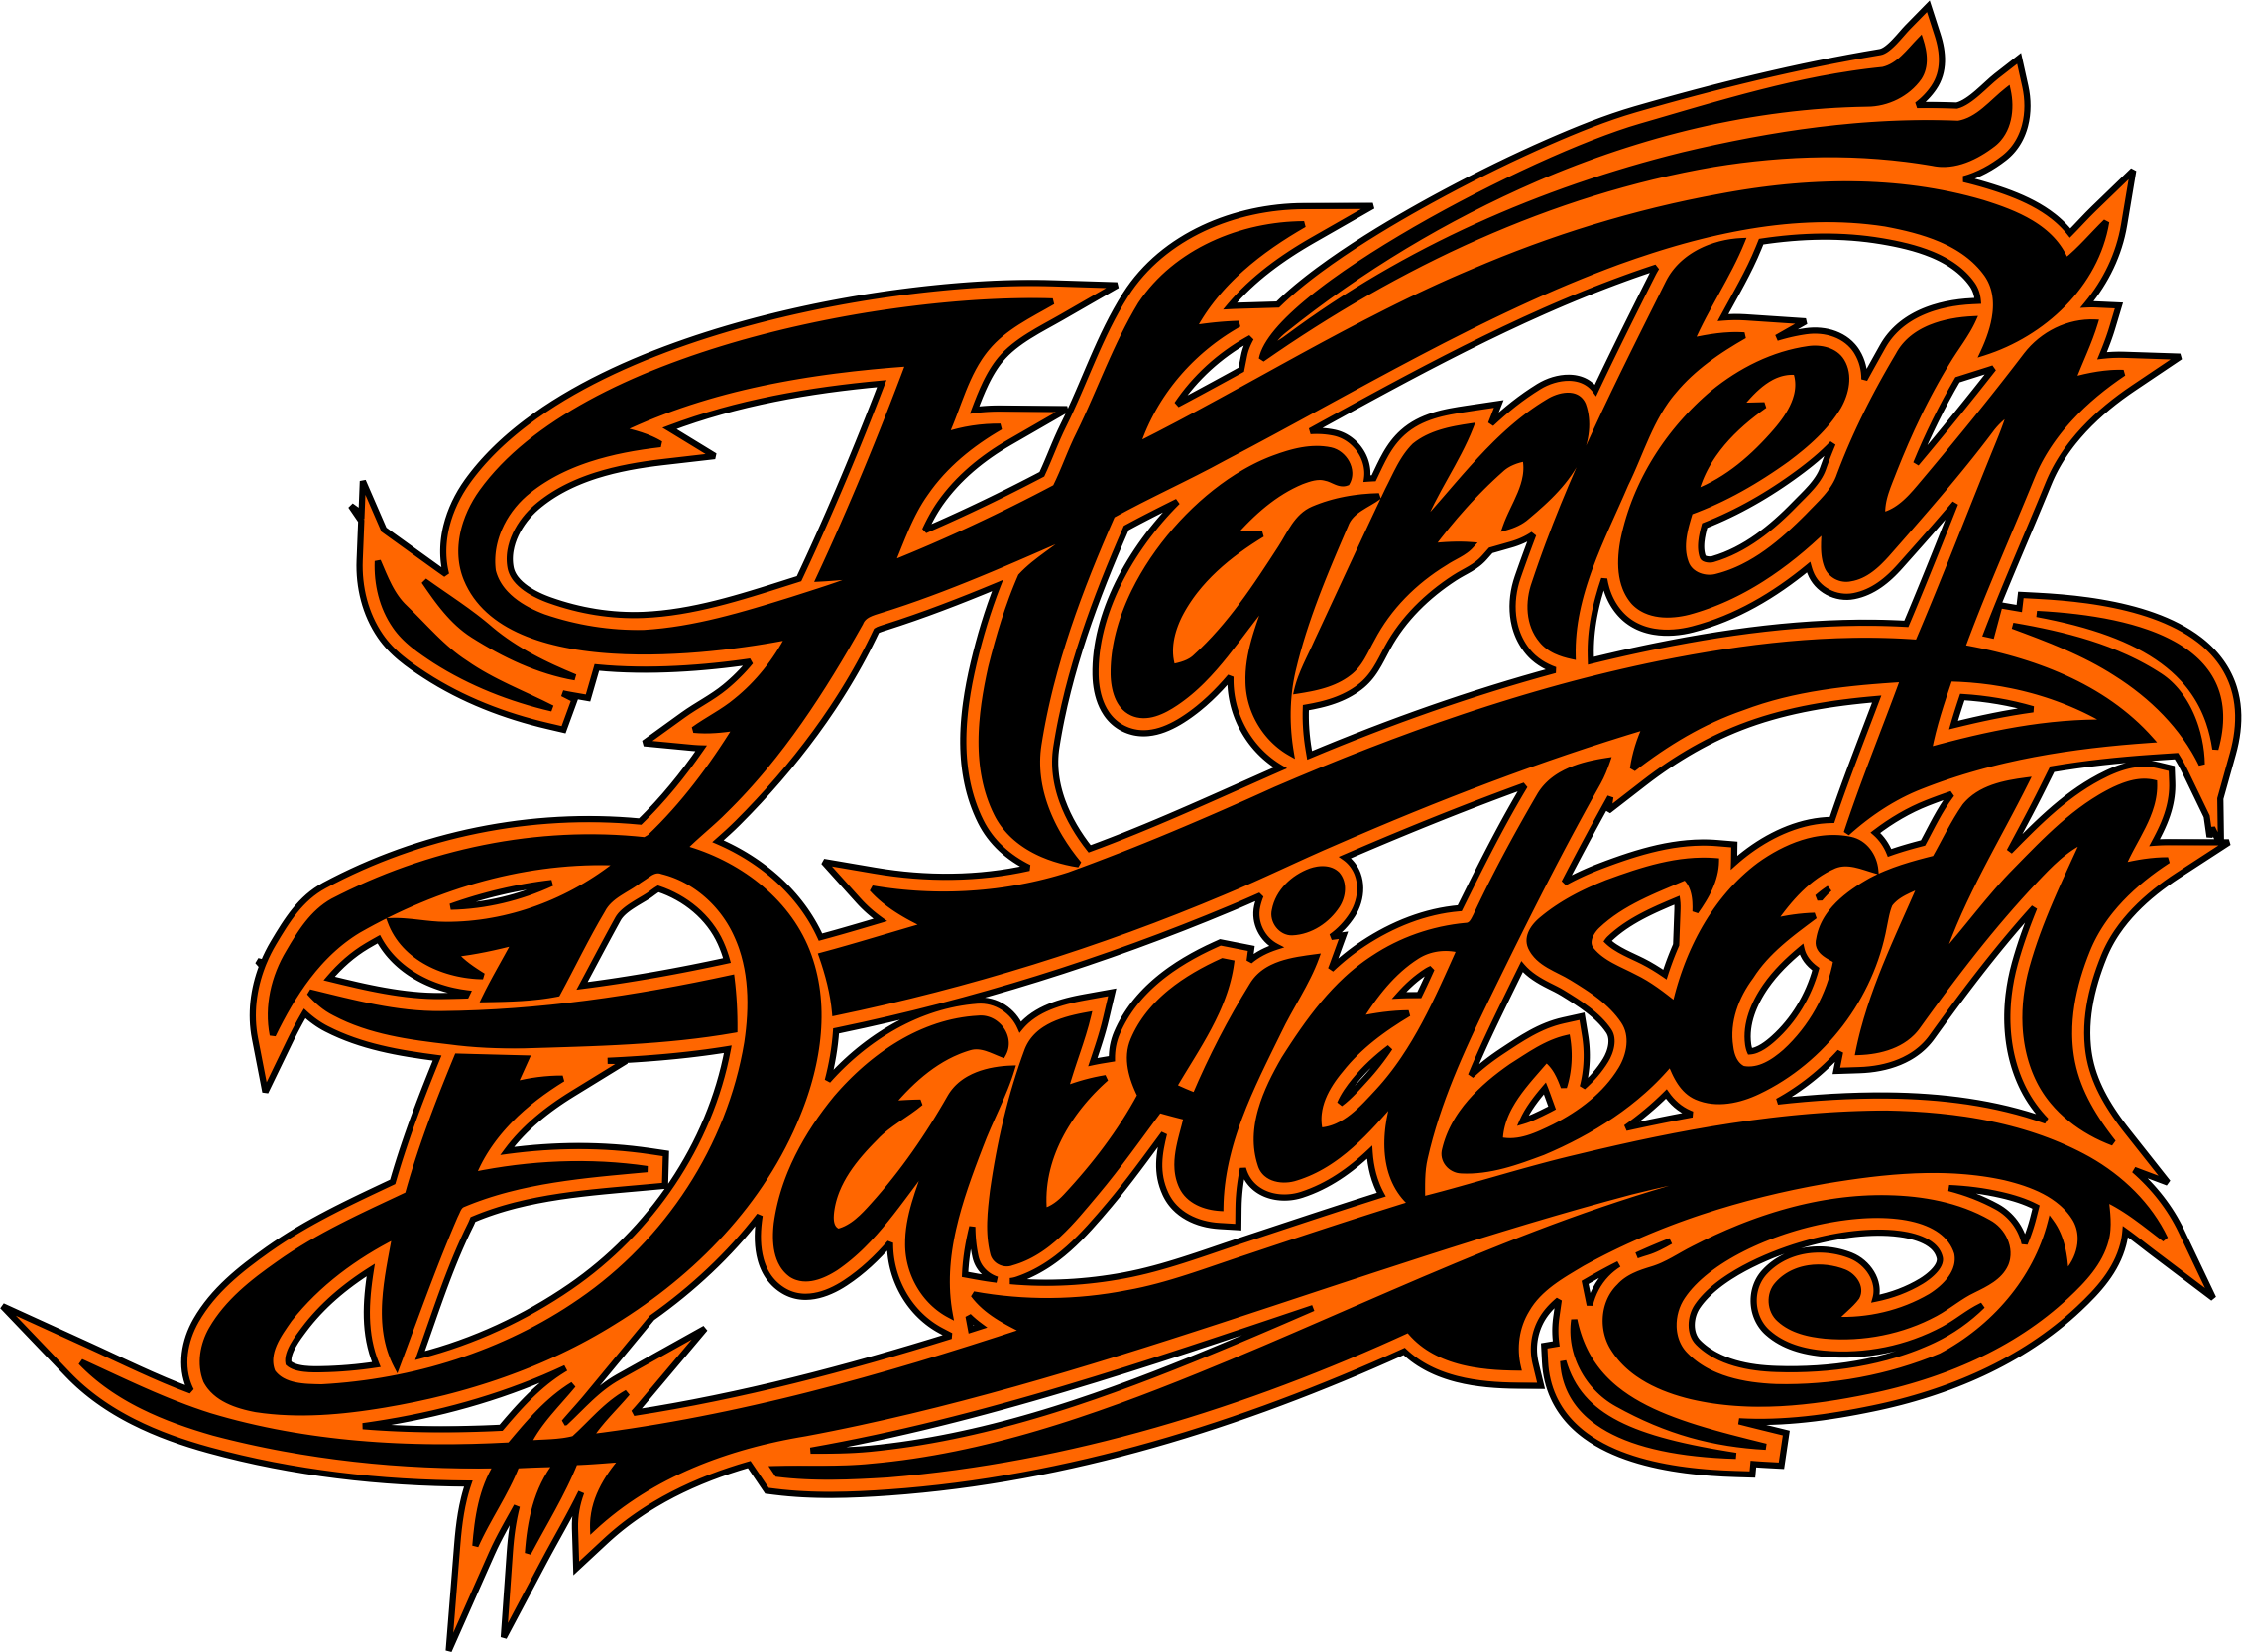 Motorcycle clipart calligraphy. Best harley davidson book